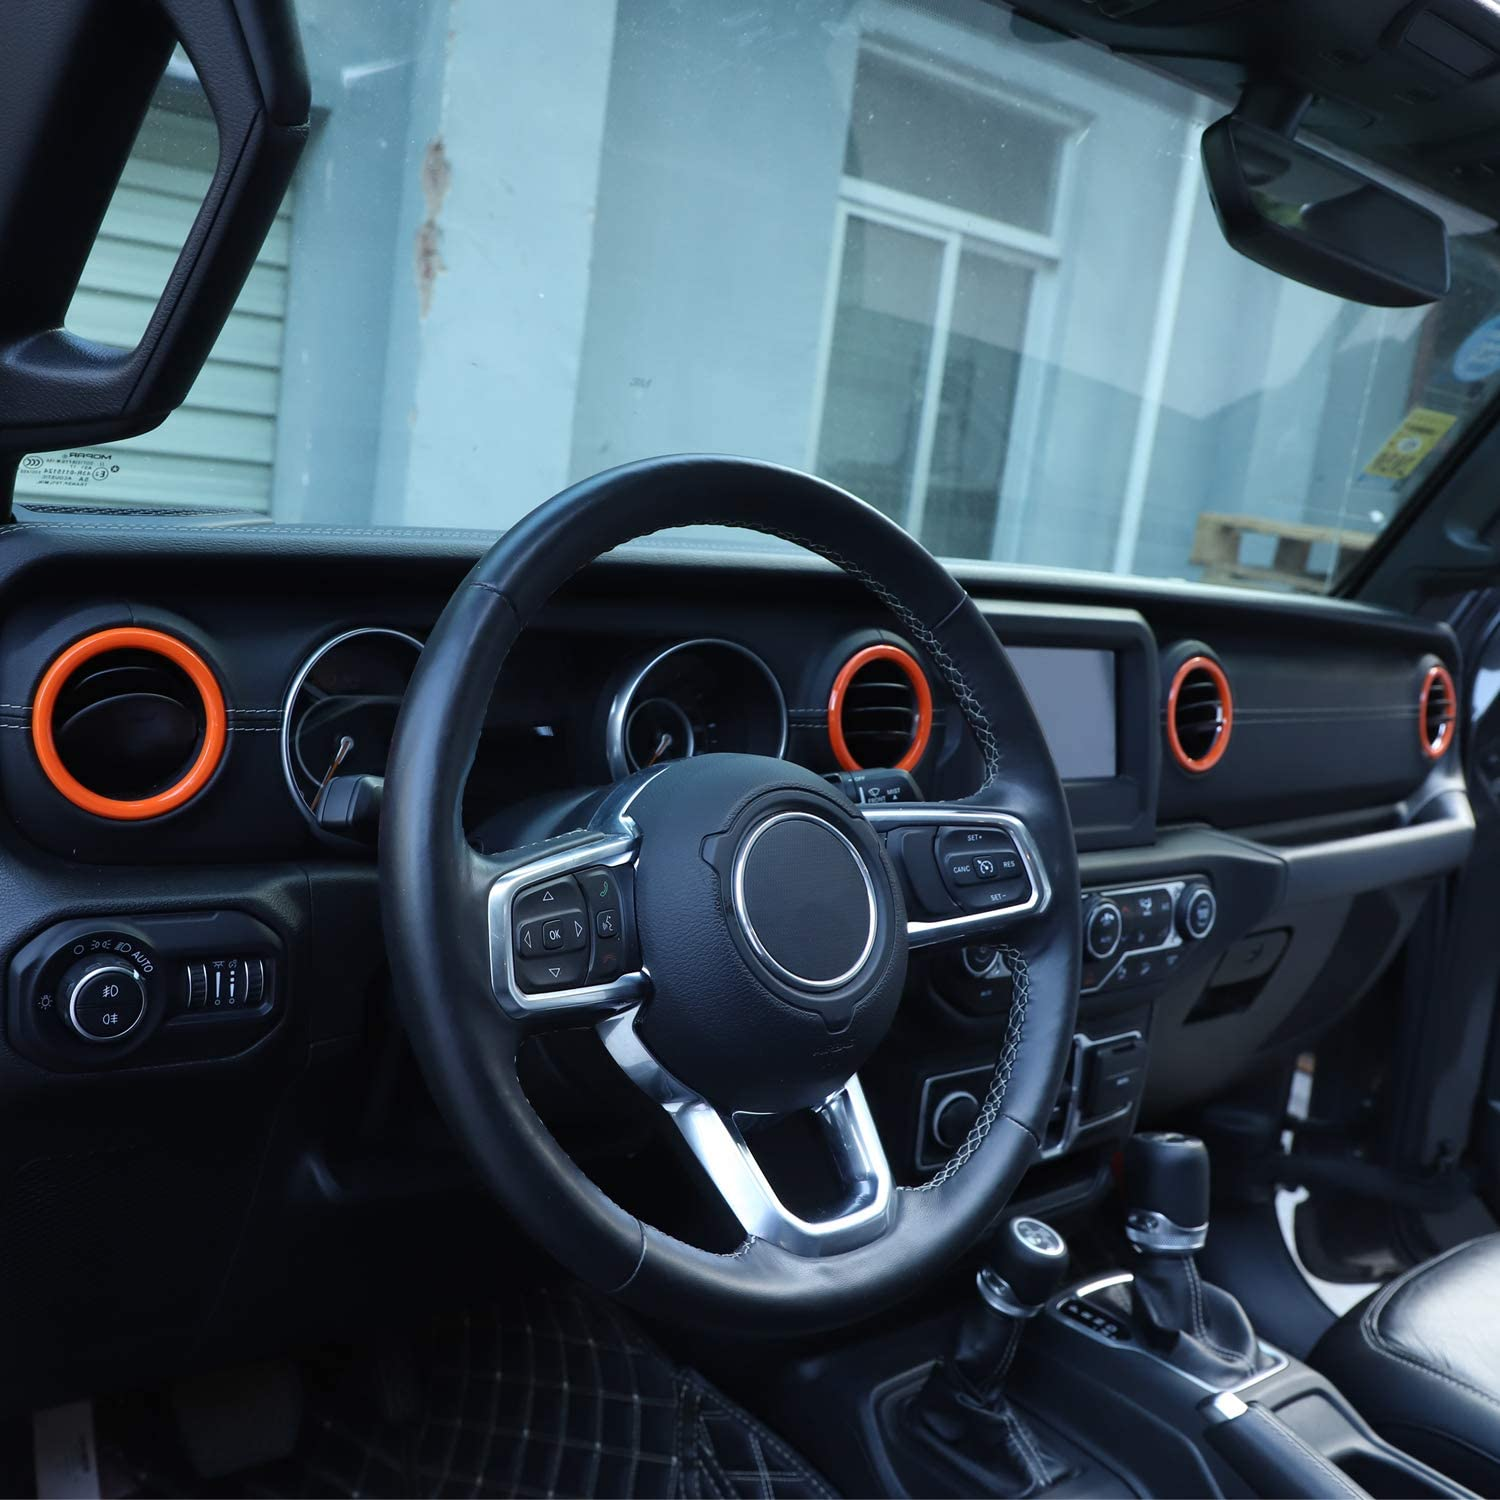 RT-TCZ Air Vents Cover Trim Decoration Stickers Air Conditioning Vent Outlets Trim ABS Cover for Jeep 2018-2021 UP JL Orange for Jeep Wrangler Accessories